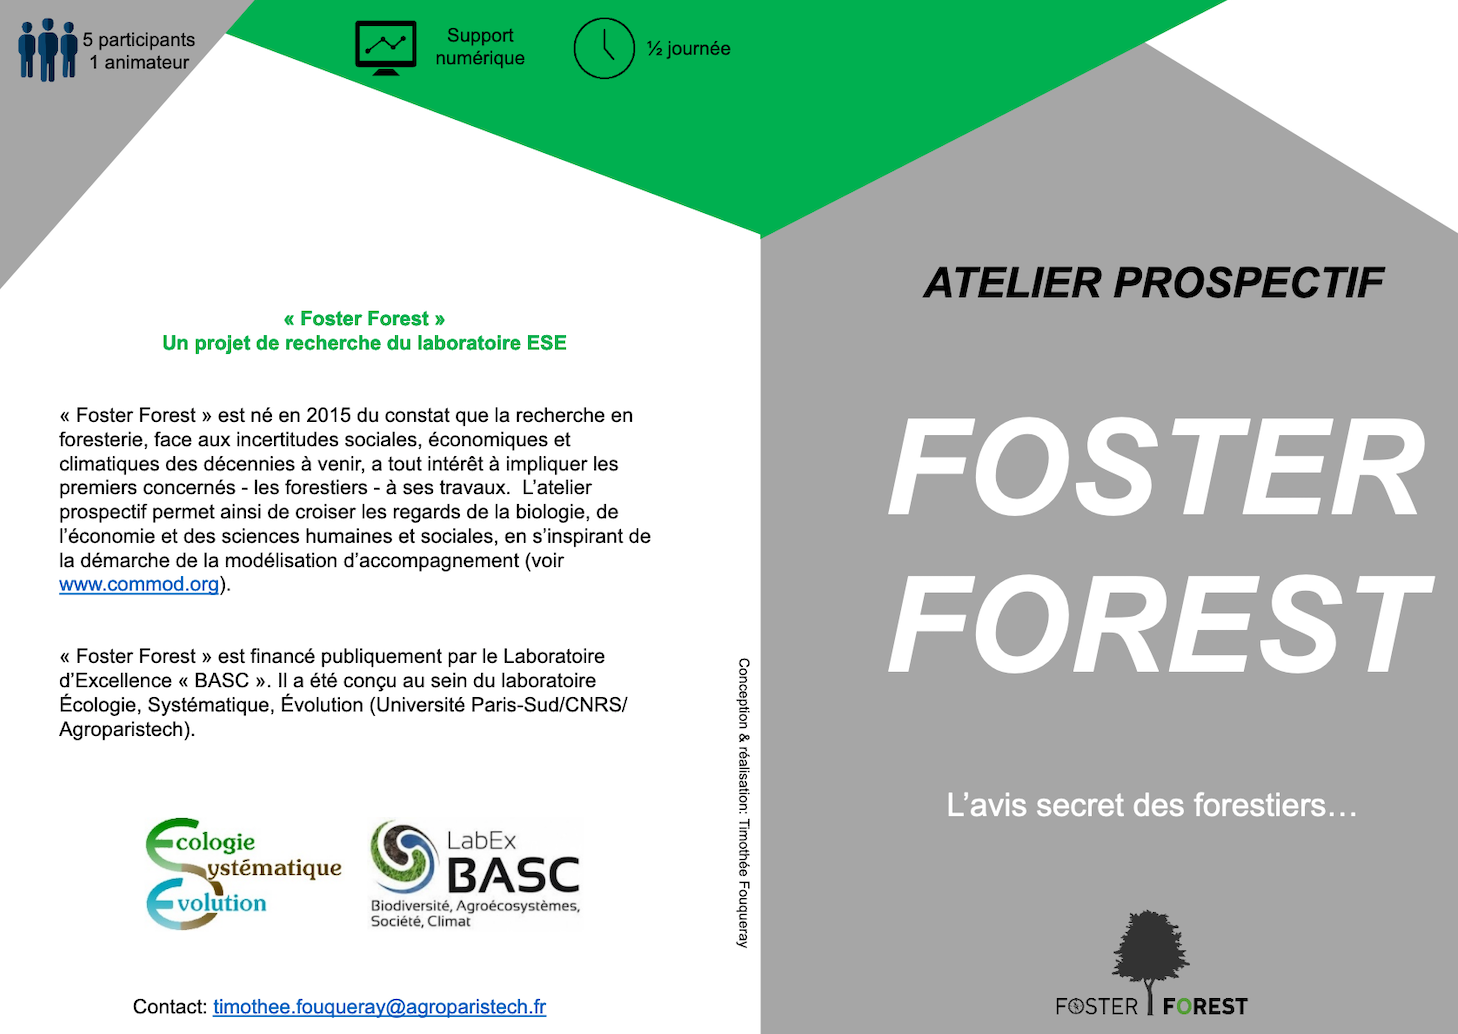 Foster Forest flyer part I